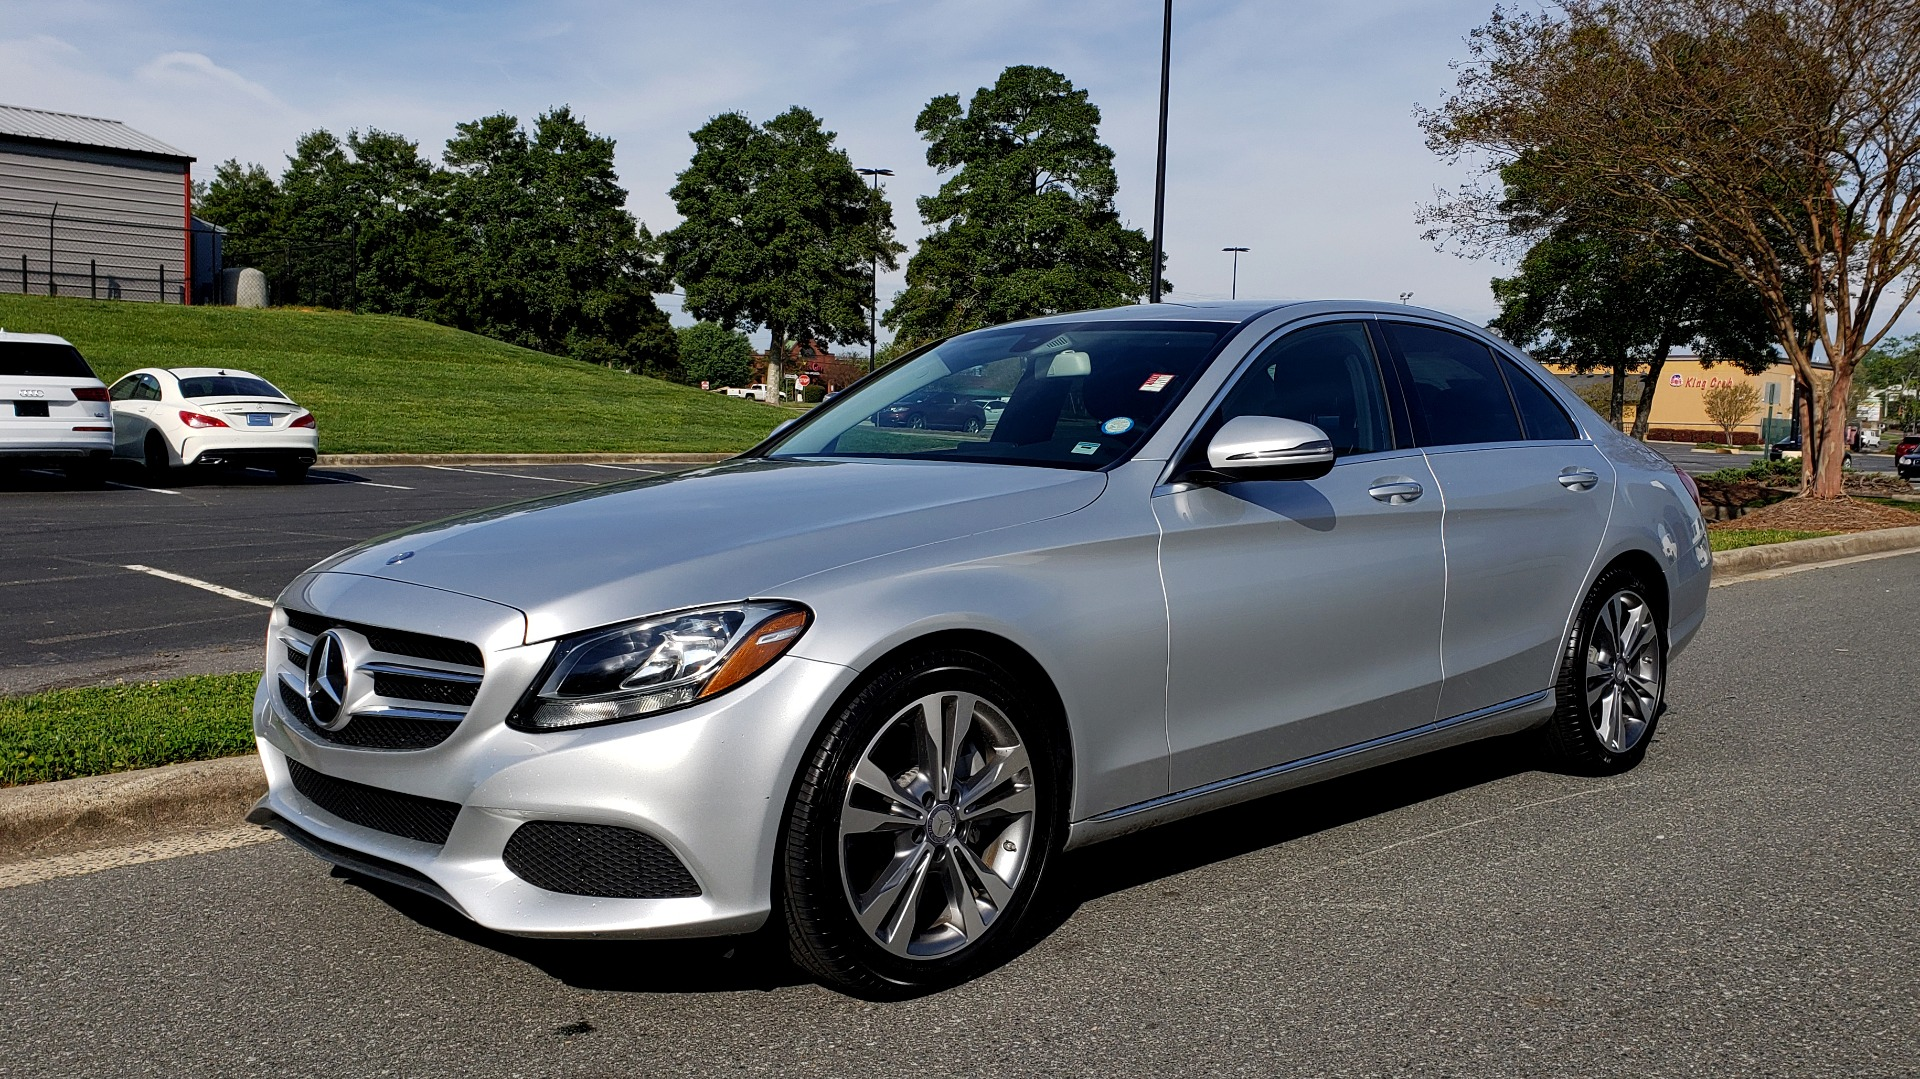 Used 2016 Mercedes-Benz C-CLASS C 300 PREMIUM / NAV / SNRF/ HTD STS / REARVIEW / BSM for sale Sold at Formula Imports in Charlotte NC 28227 1